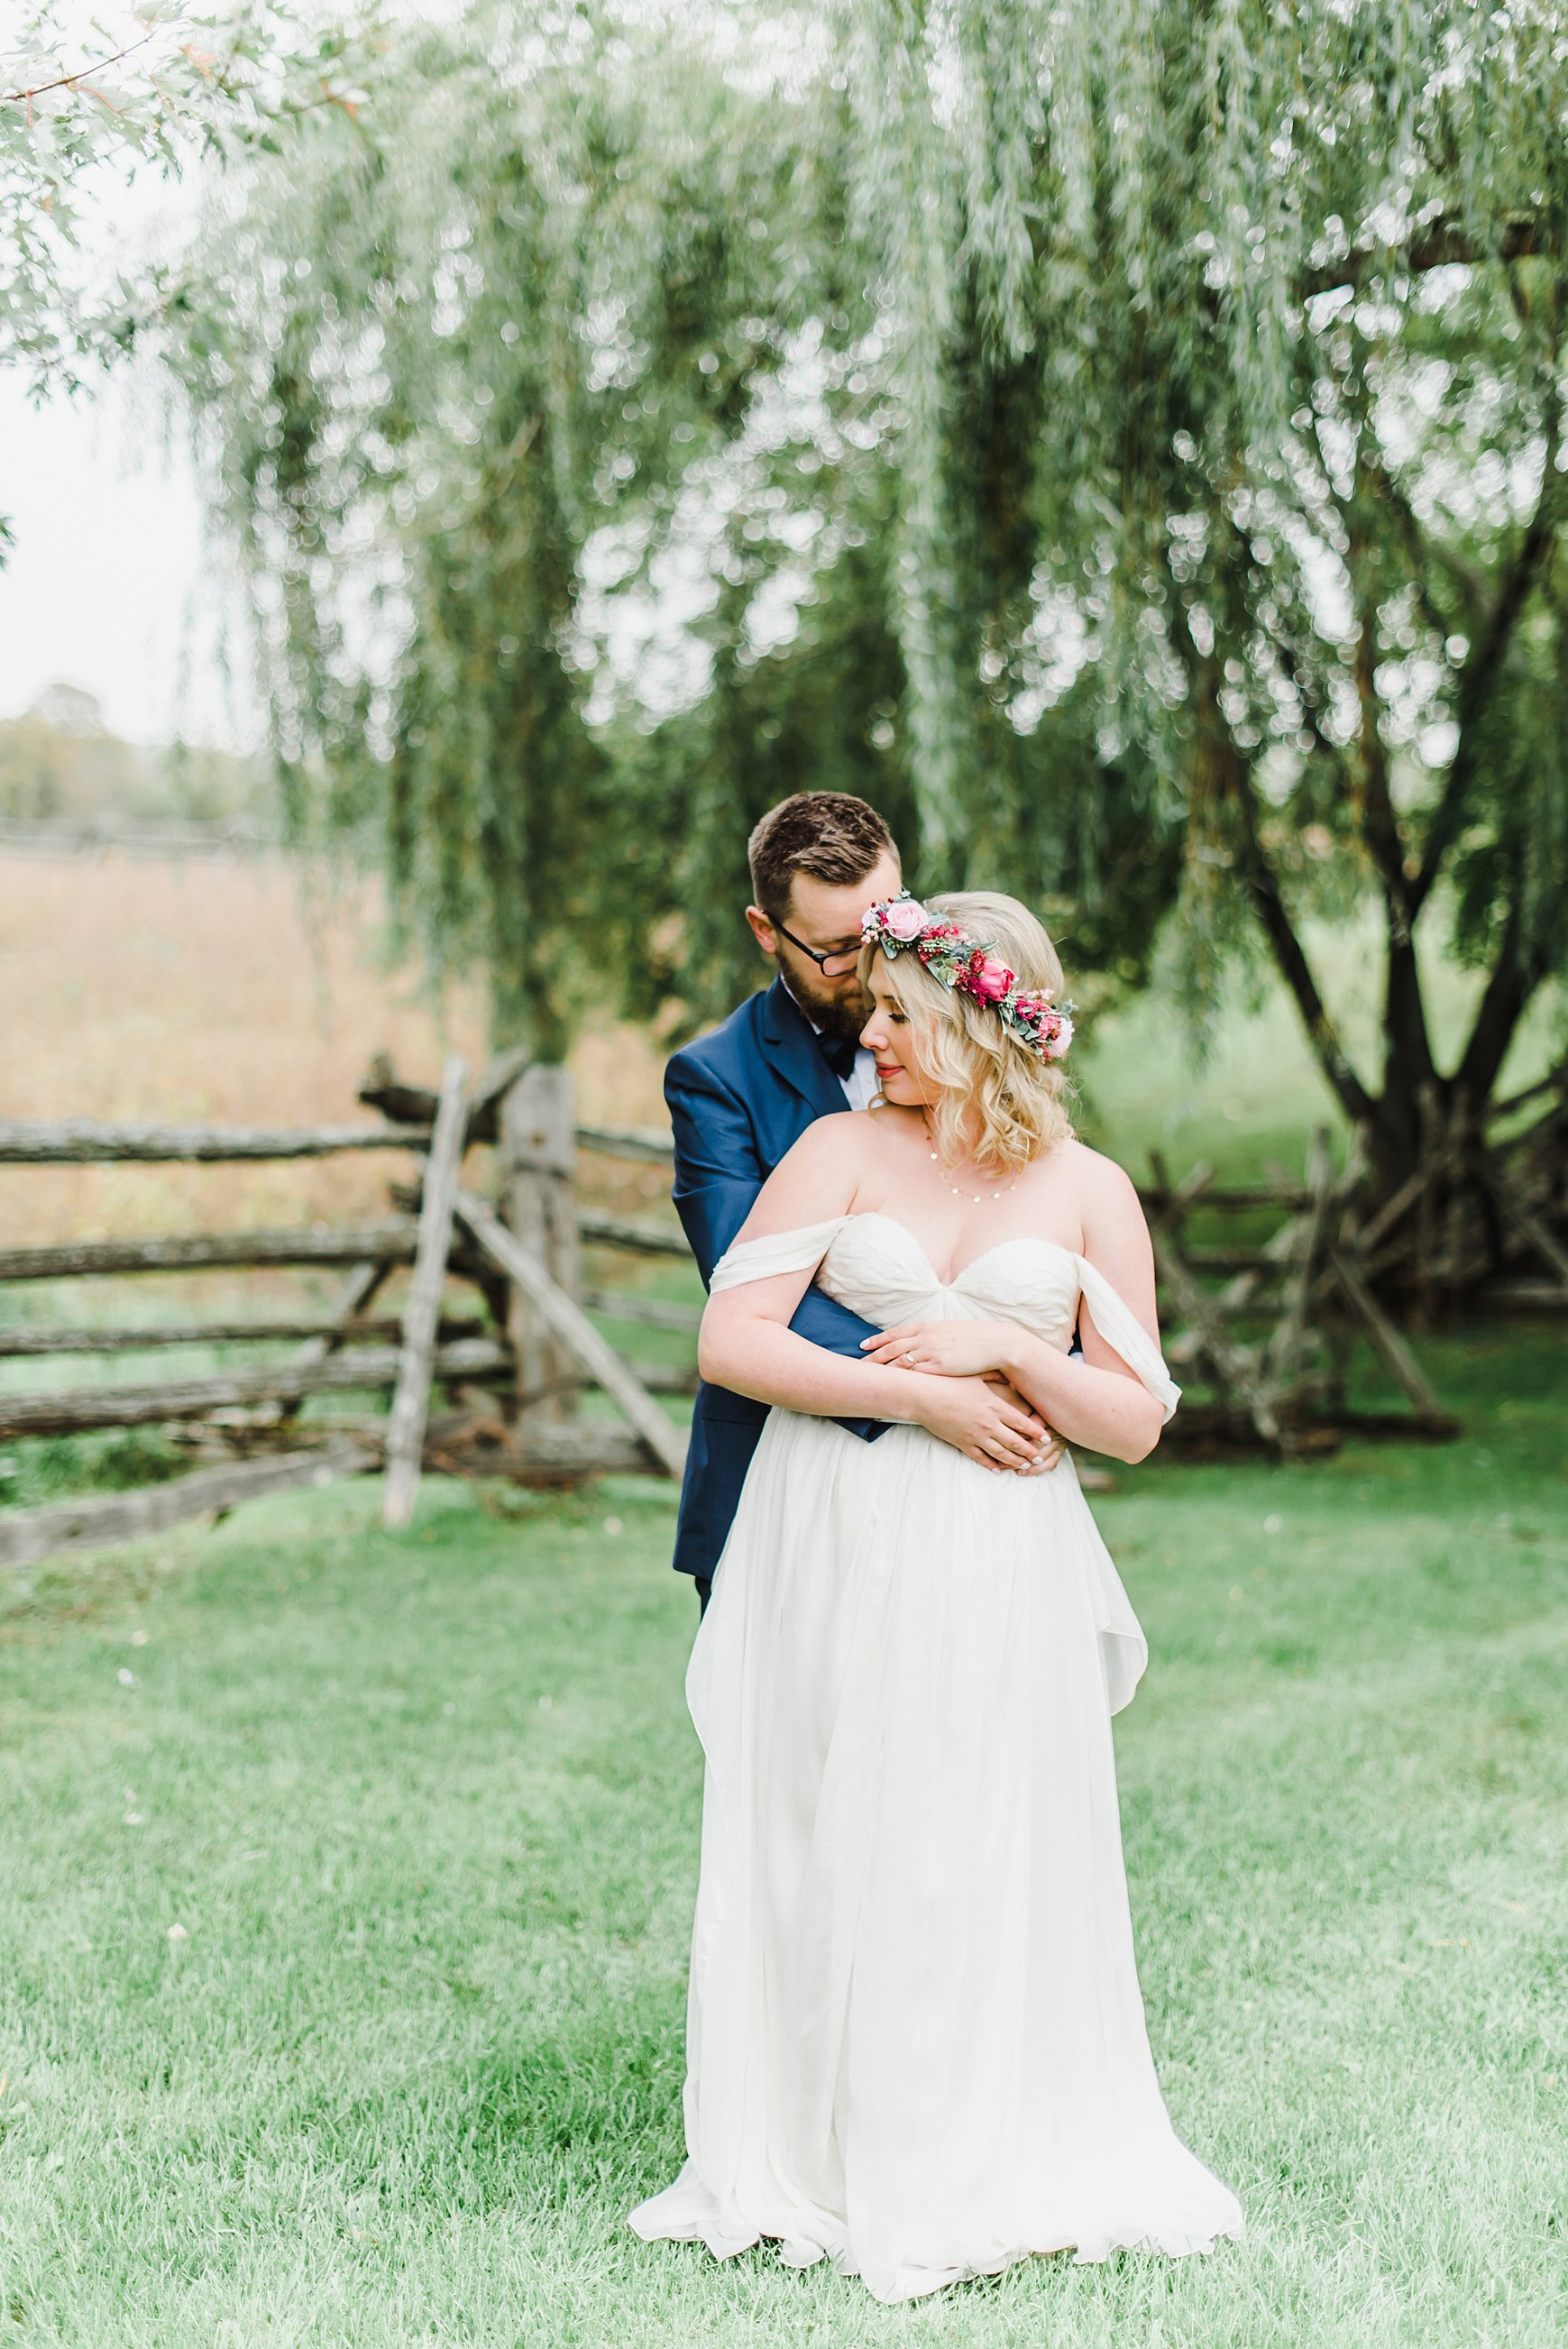 light airy indie fine art ottawa wedding photographer | Ali and Batoul Photography_0800.jpg